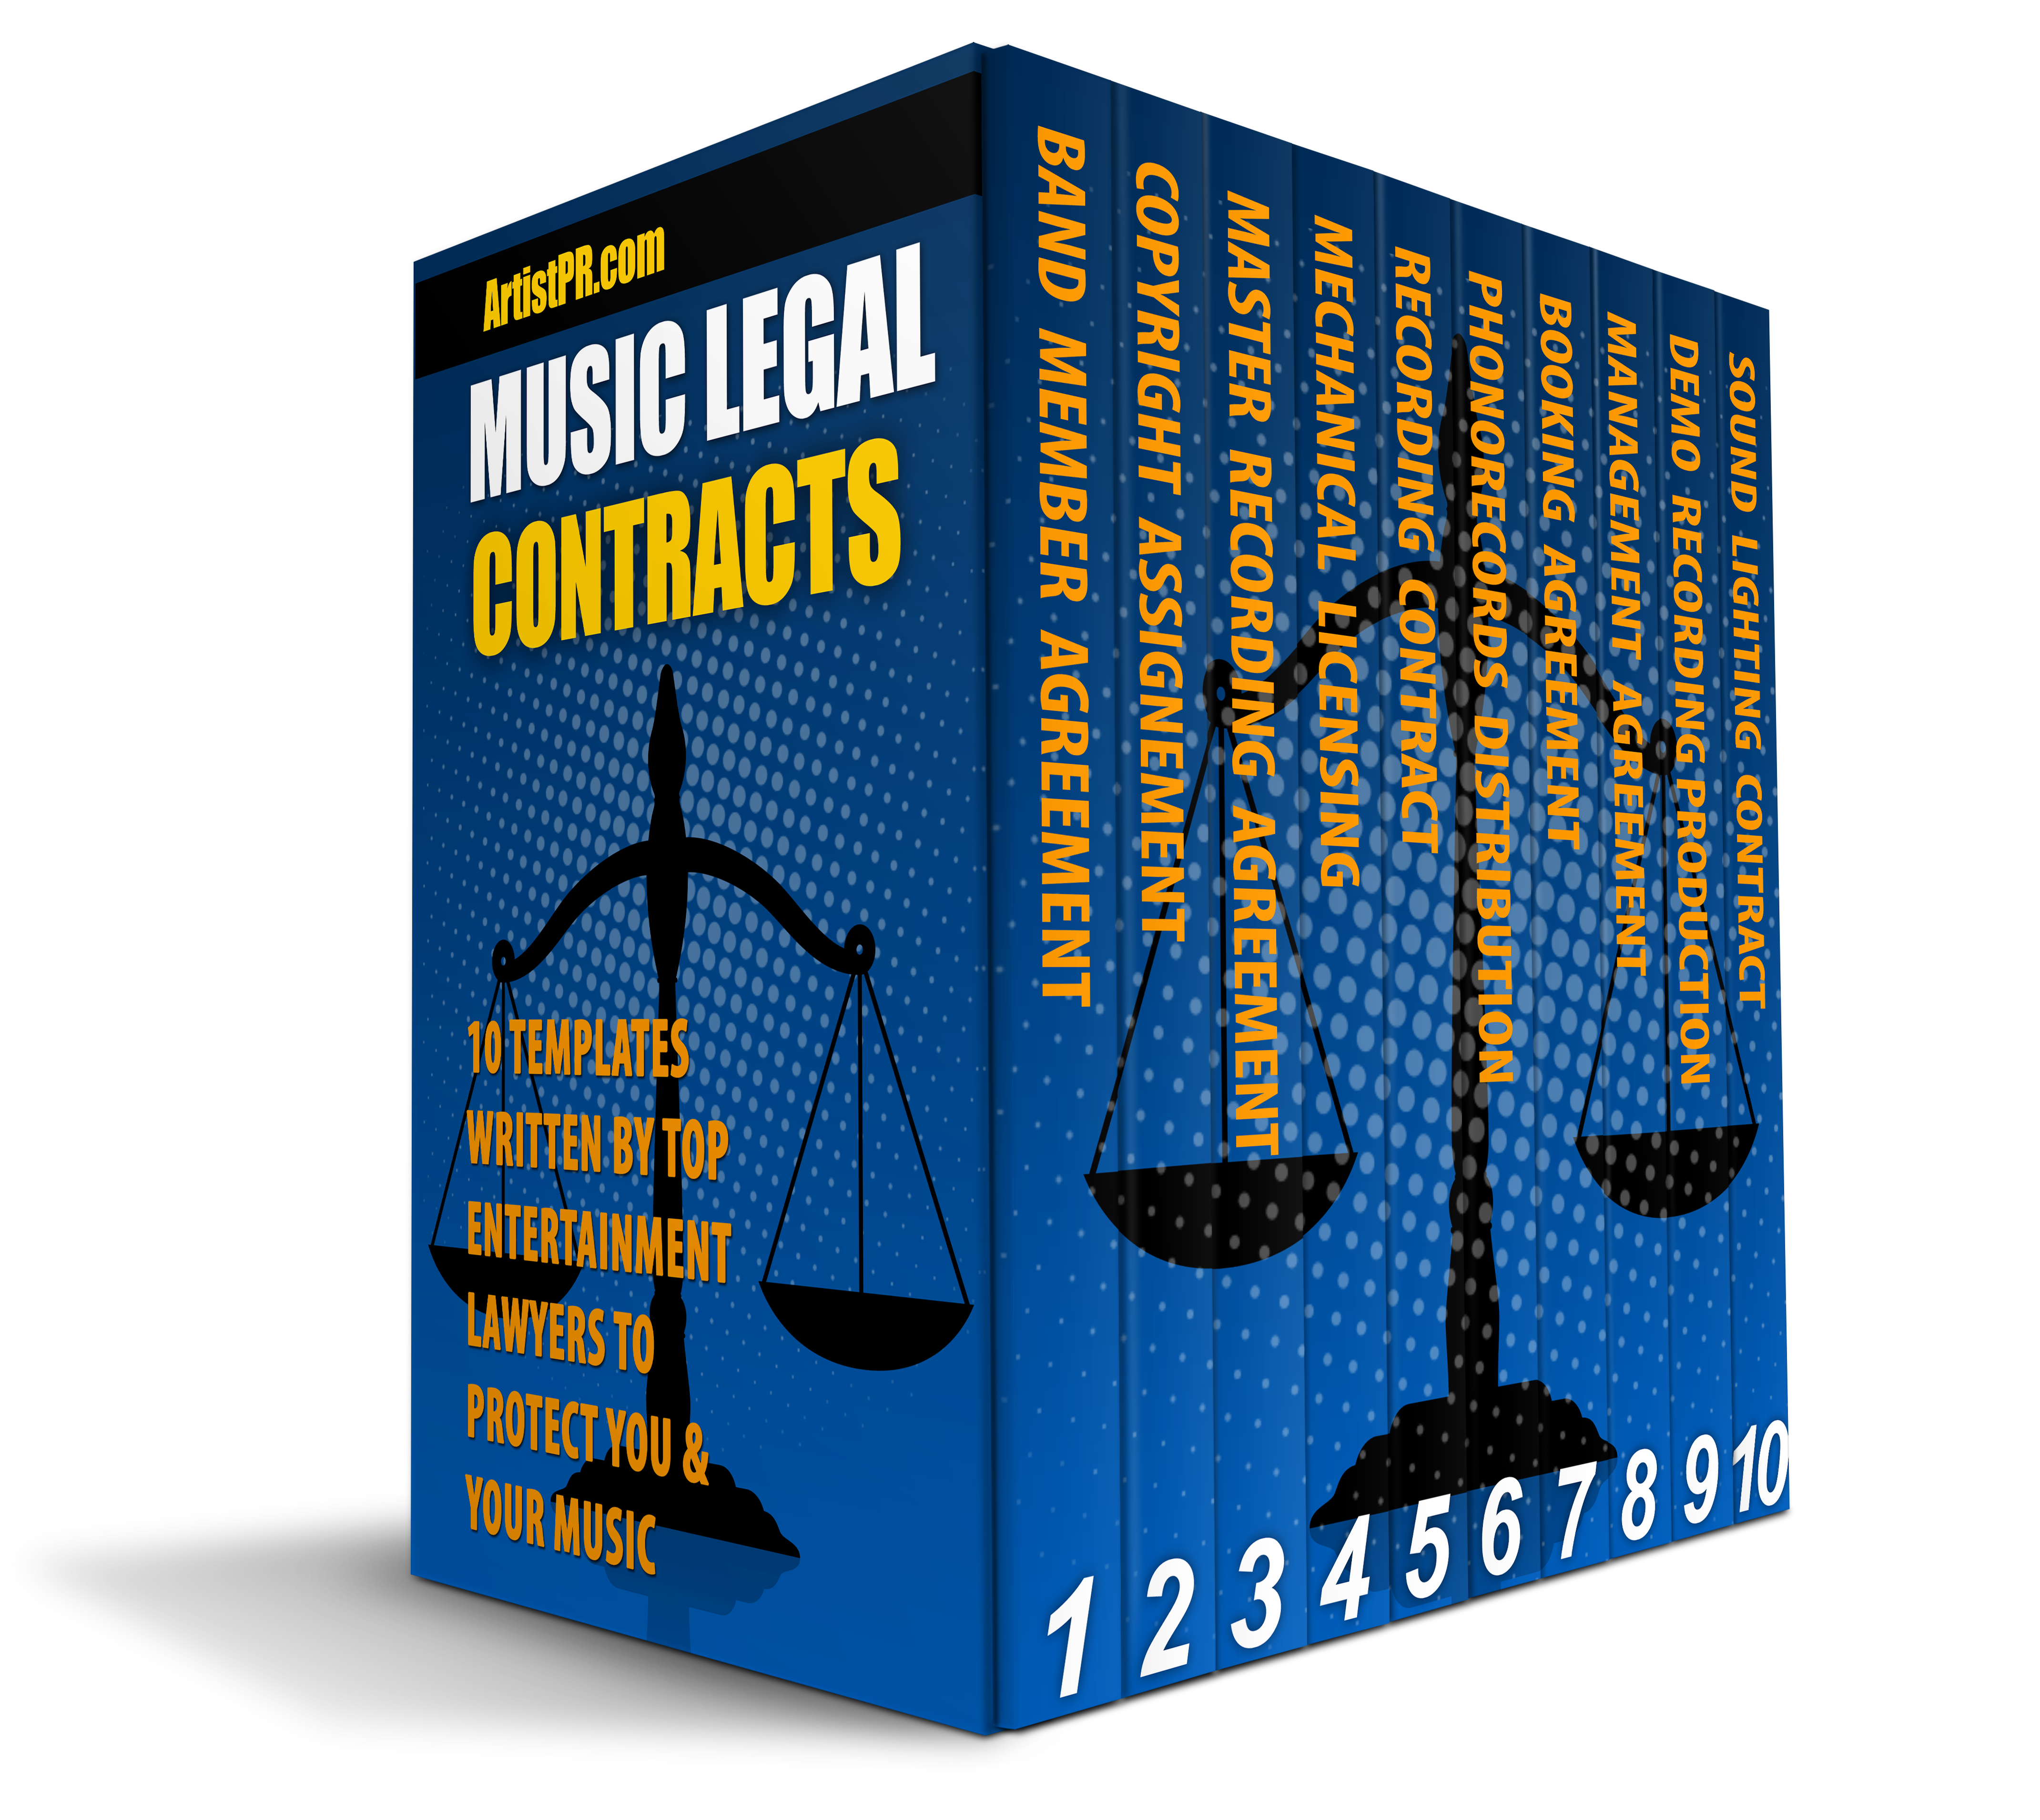 Music Legal Contracts - Over 100 Templates